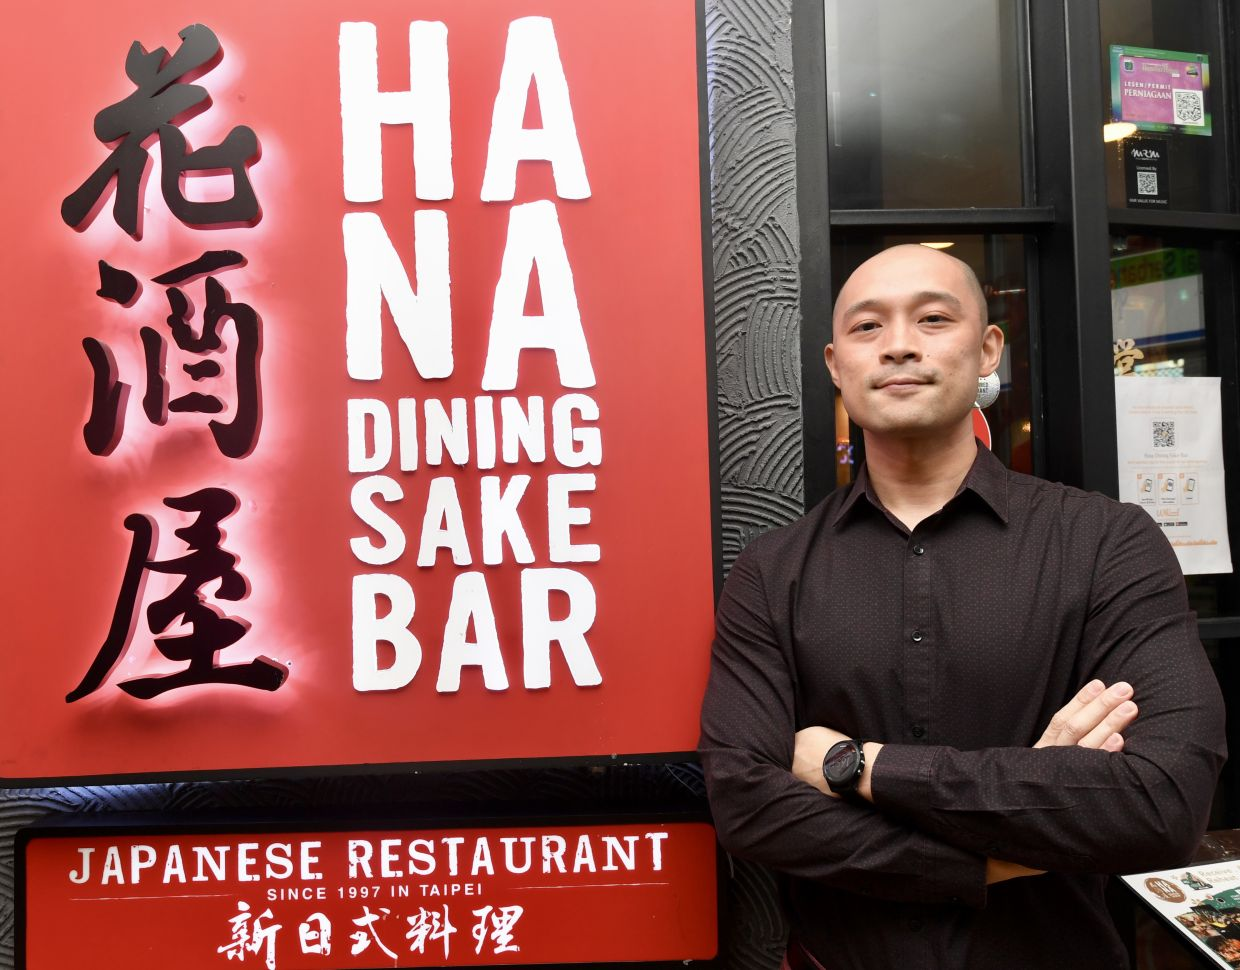 Keeping constantly in touch with its customers is of key importance to Hana Dining Sake Bar, said Chong.